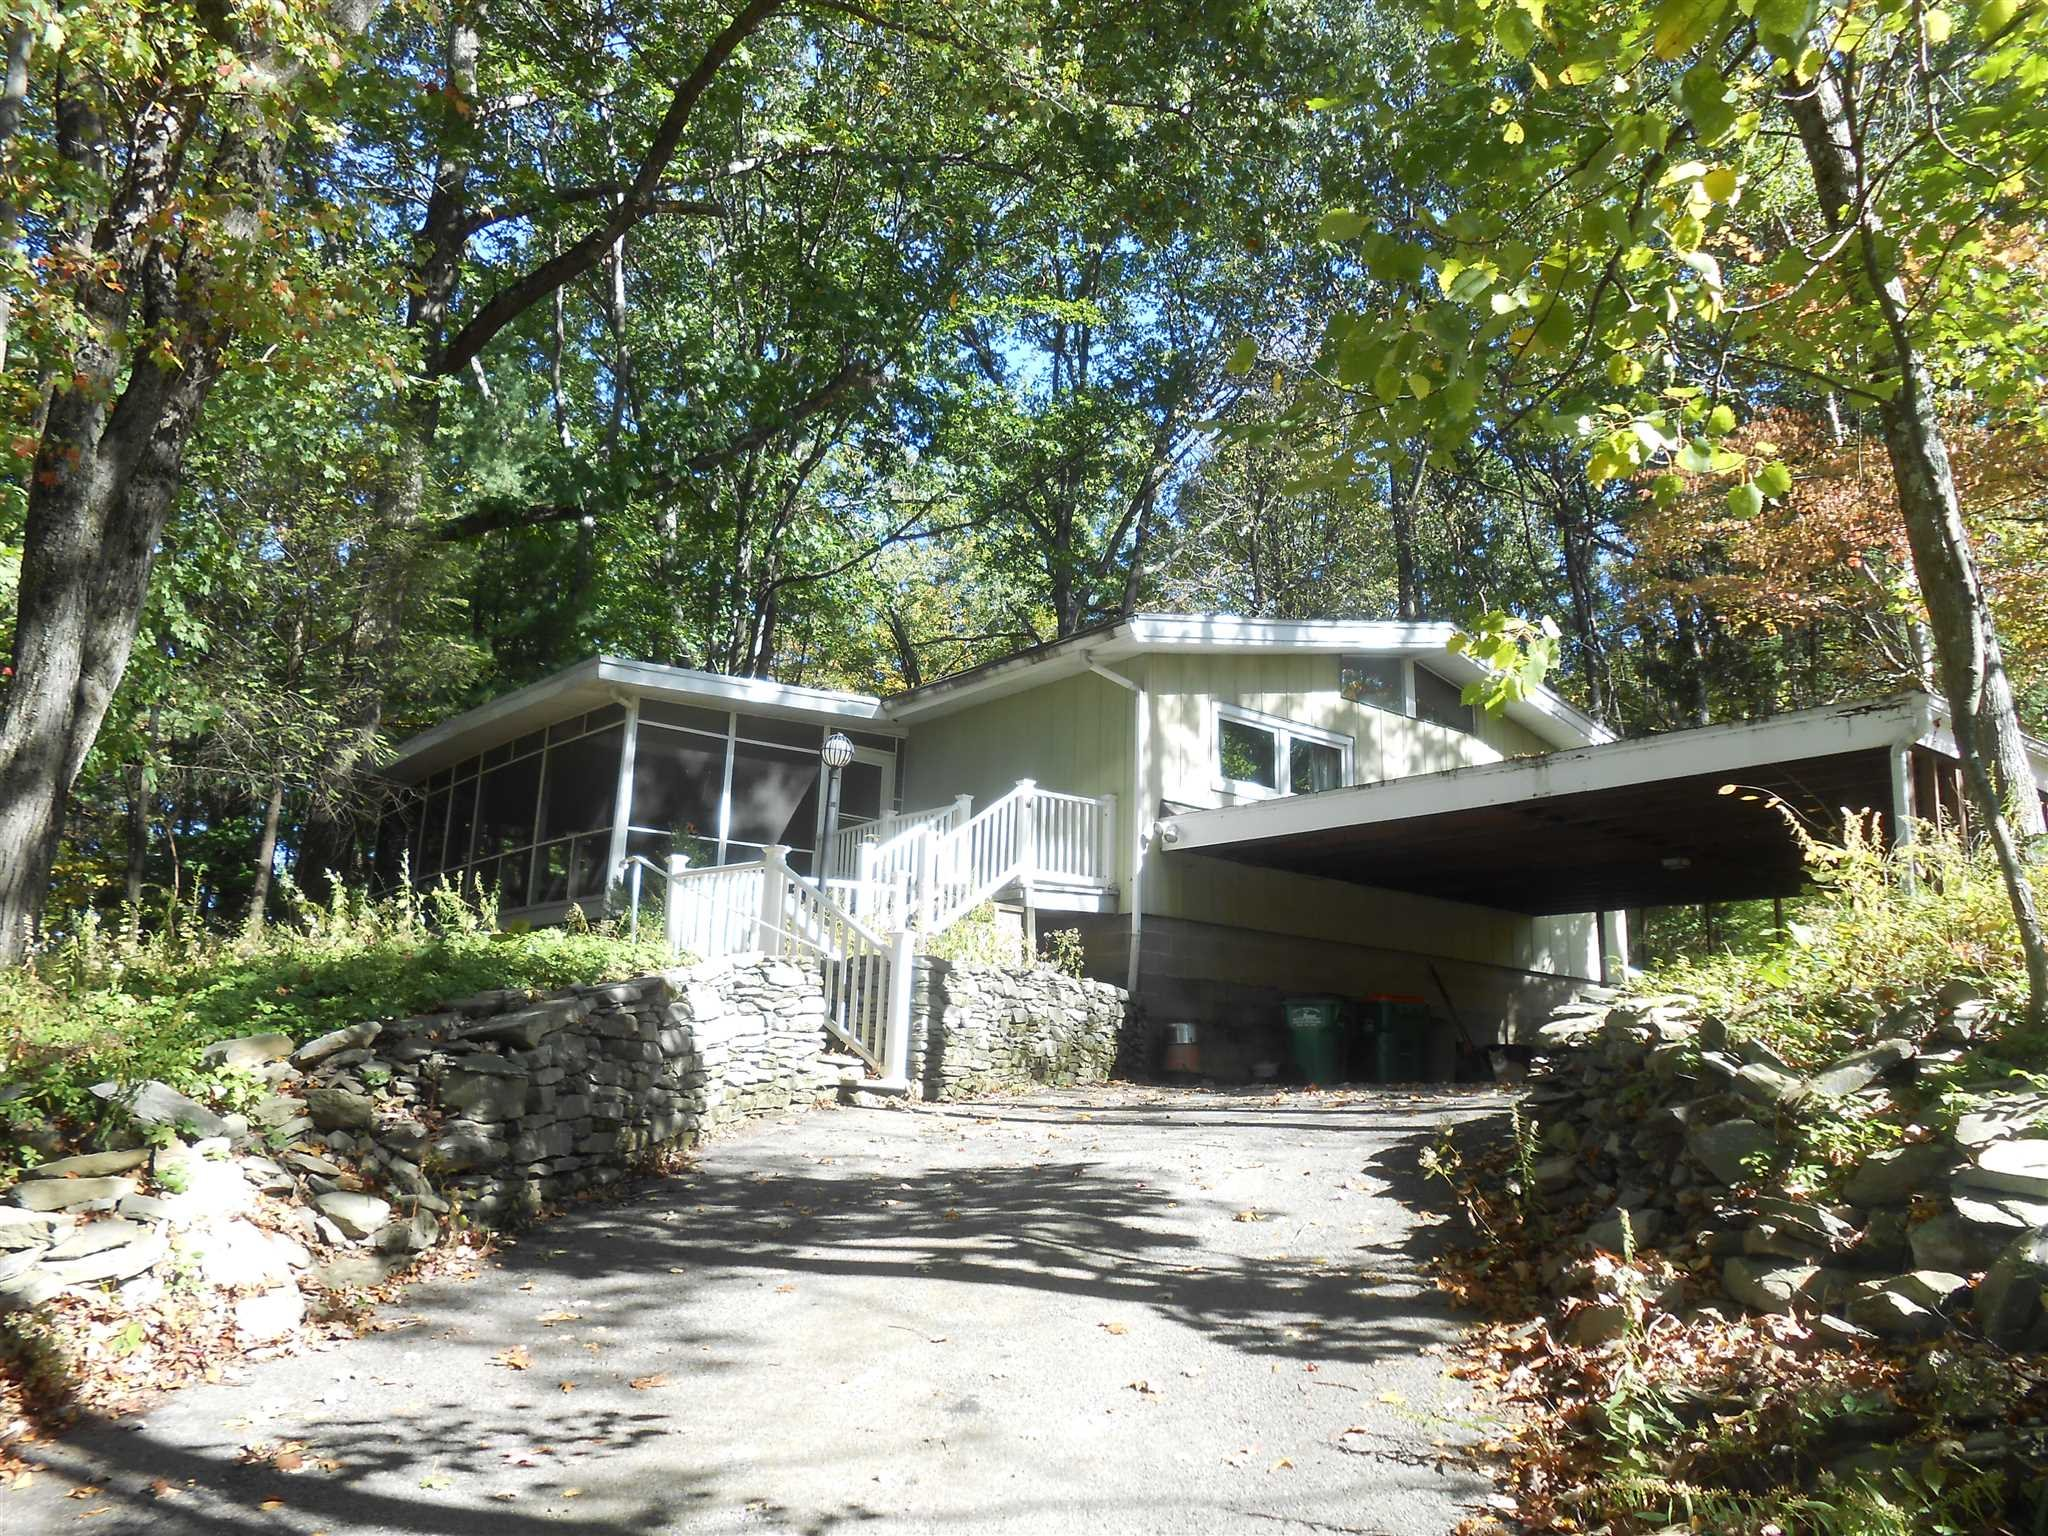 Single Family Home for Sale at 112 ROOSEVELT Road 112 ROOSEVELT Road Hyde Park, New York 12538 United States